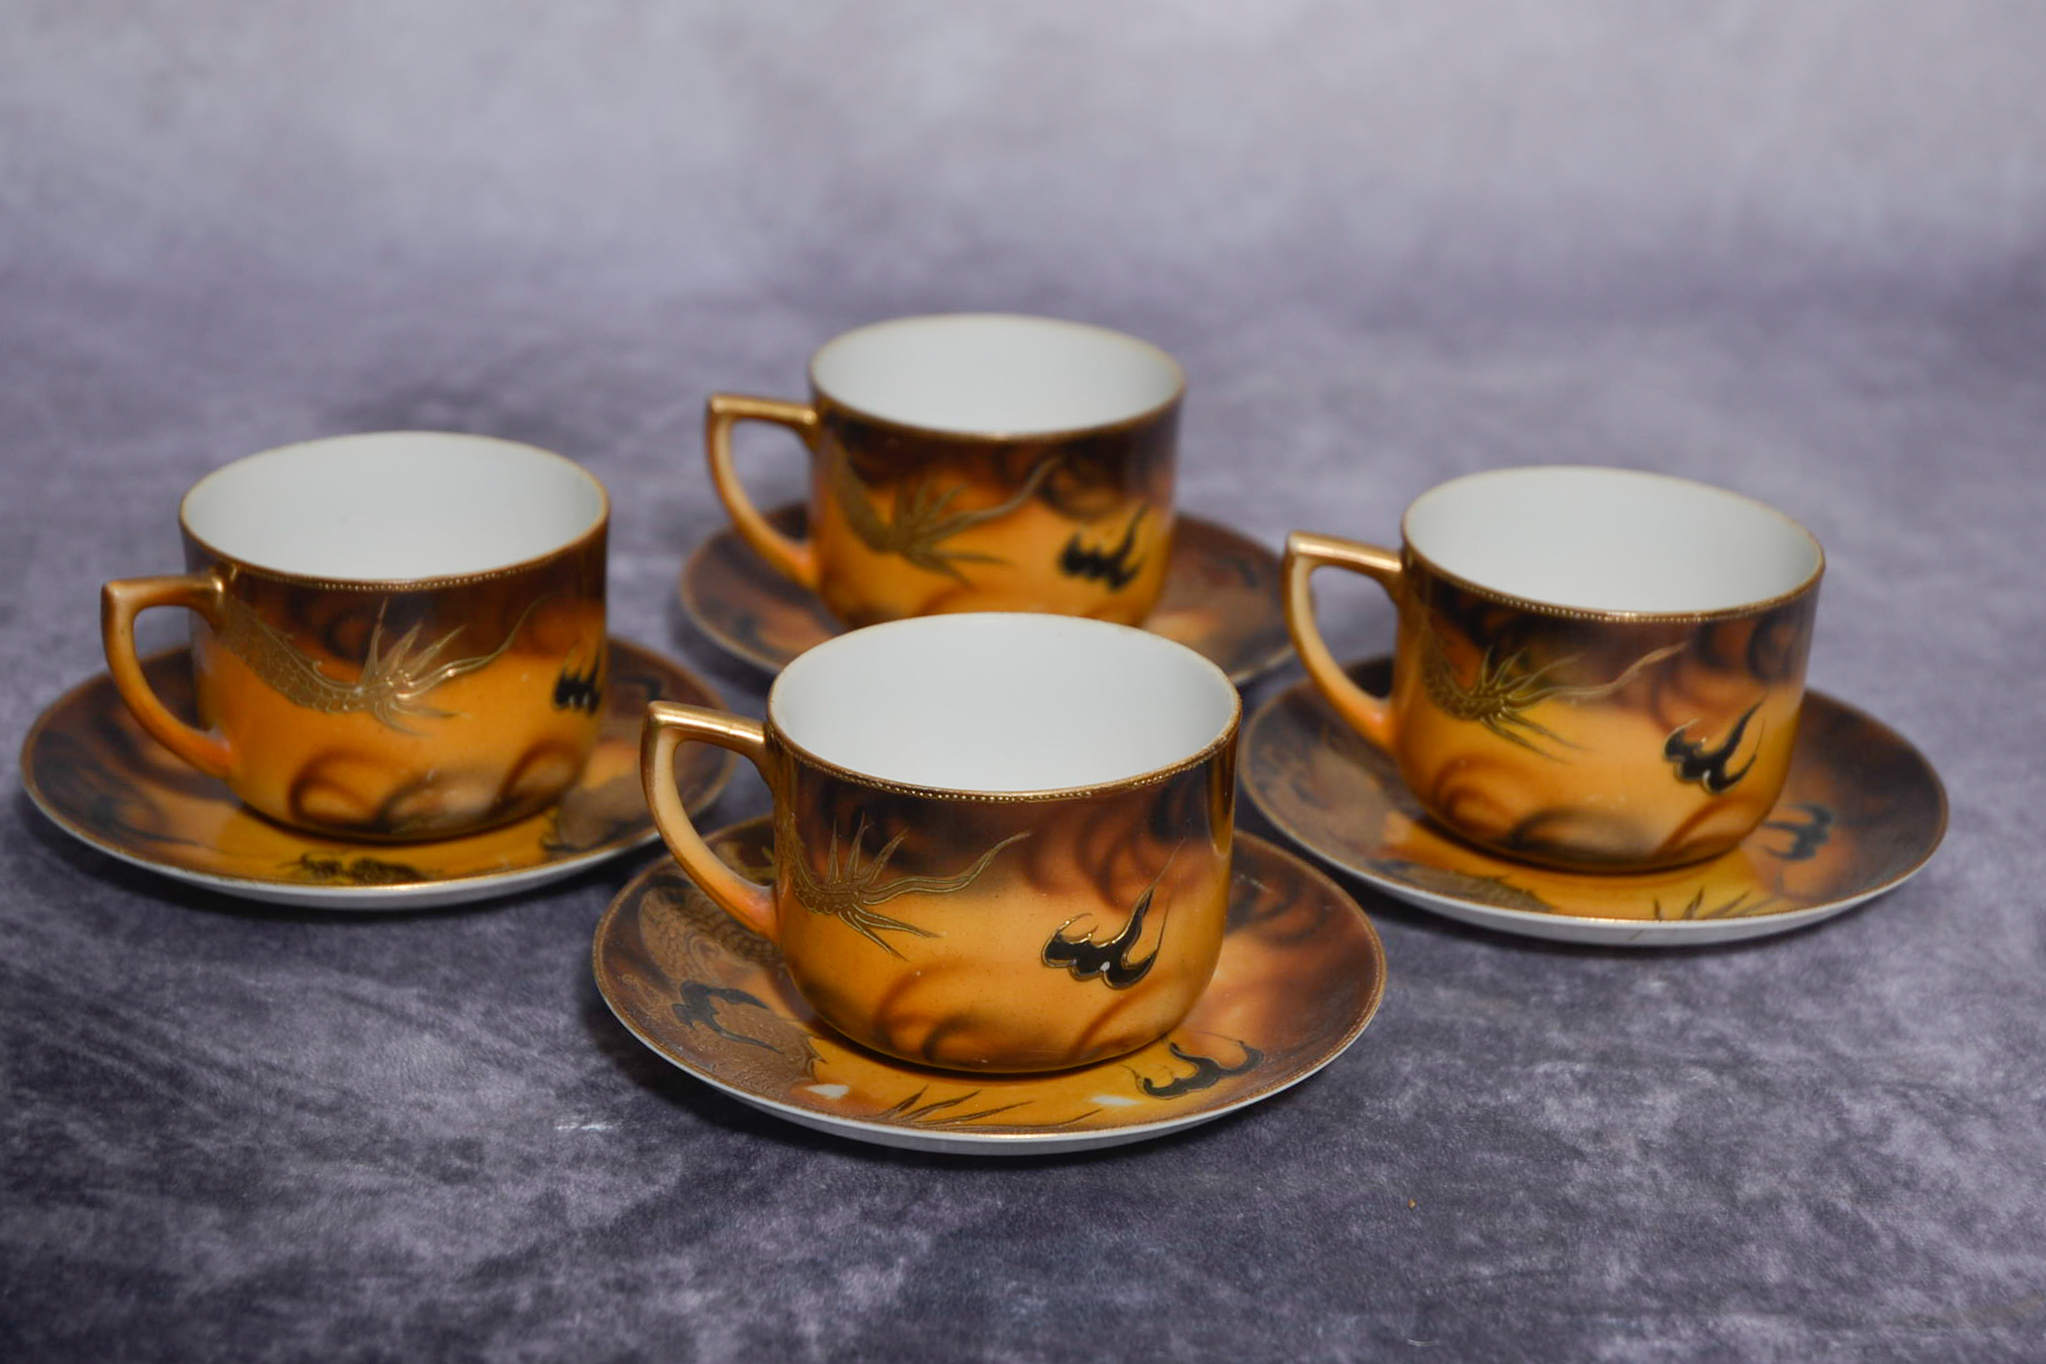 Lot 52 - Set of four Japanese cups and saucers